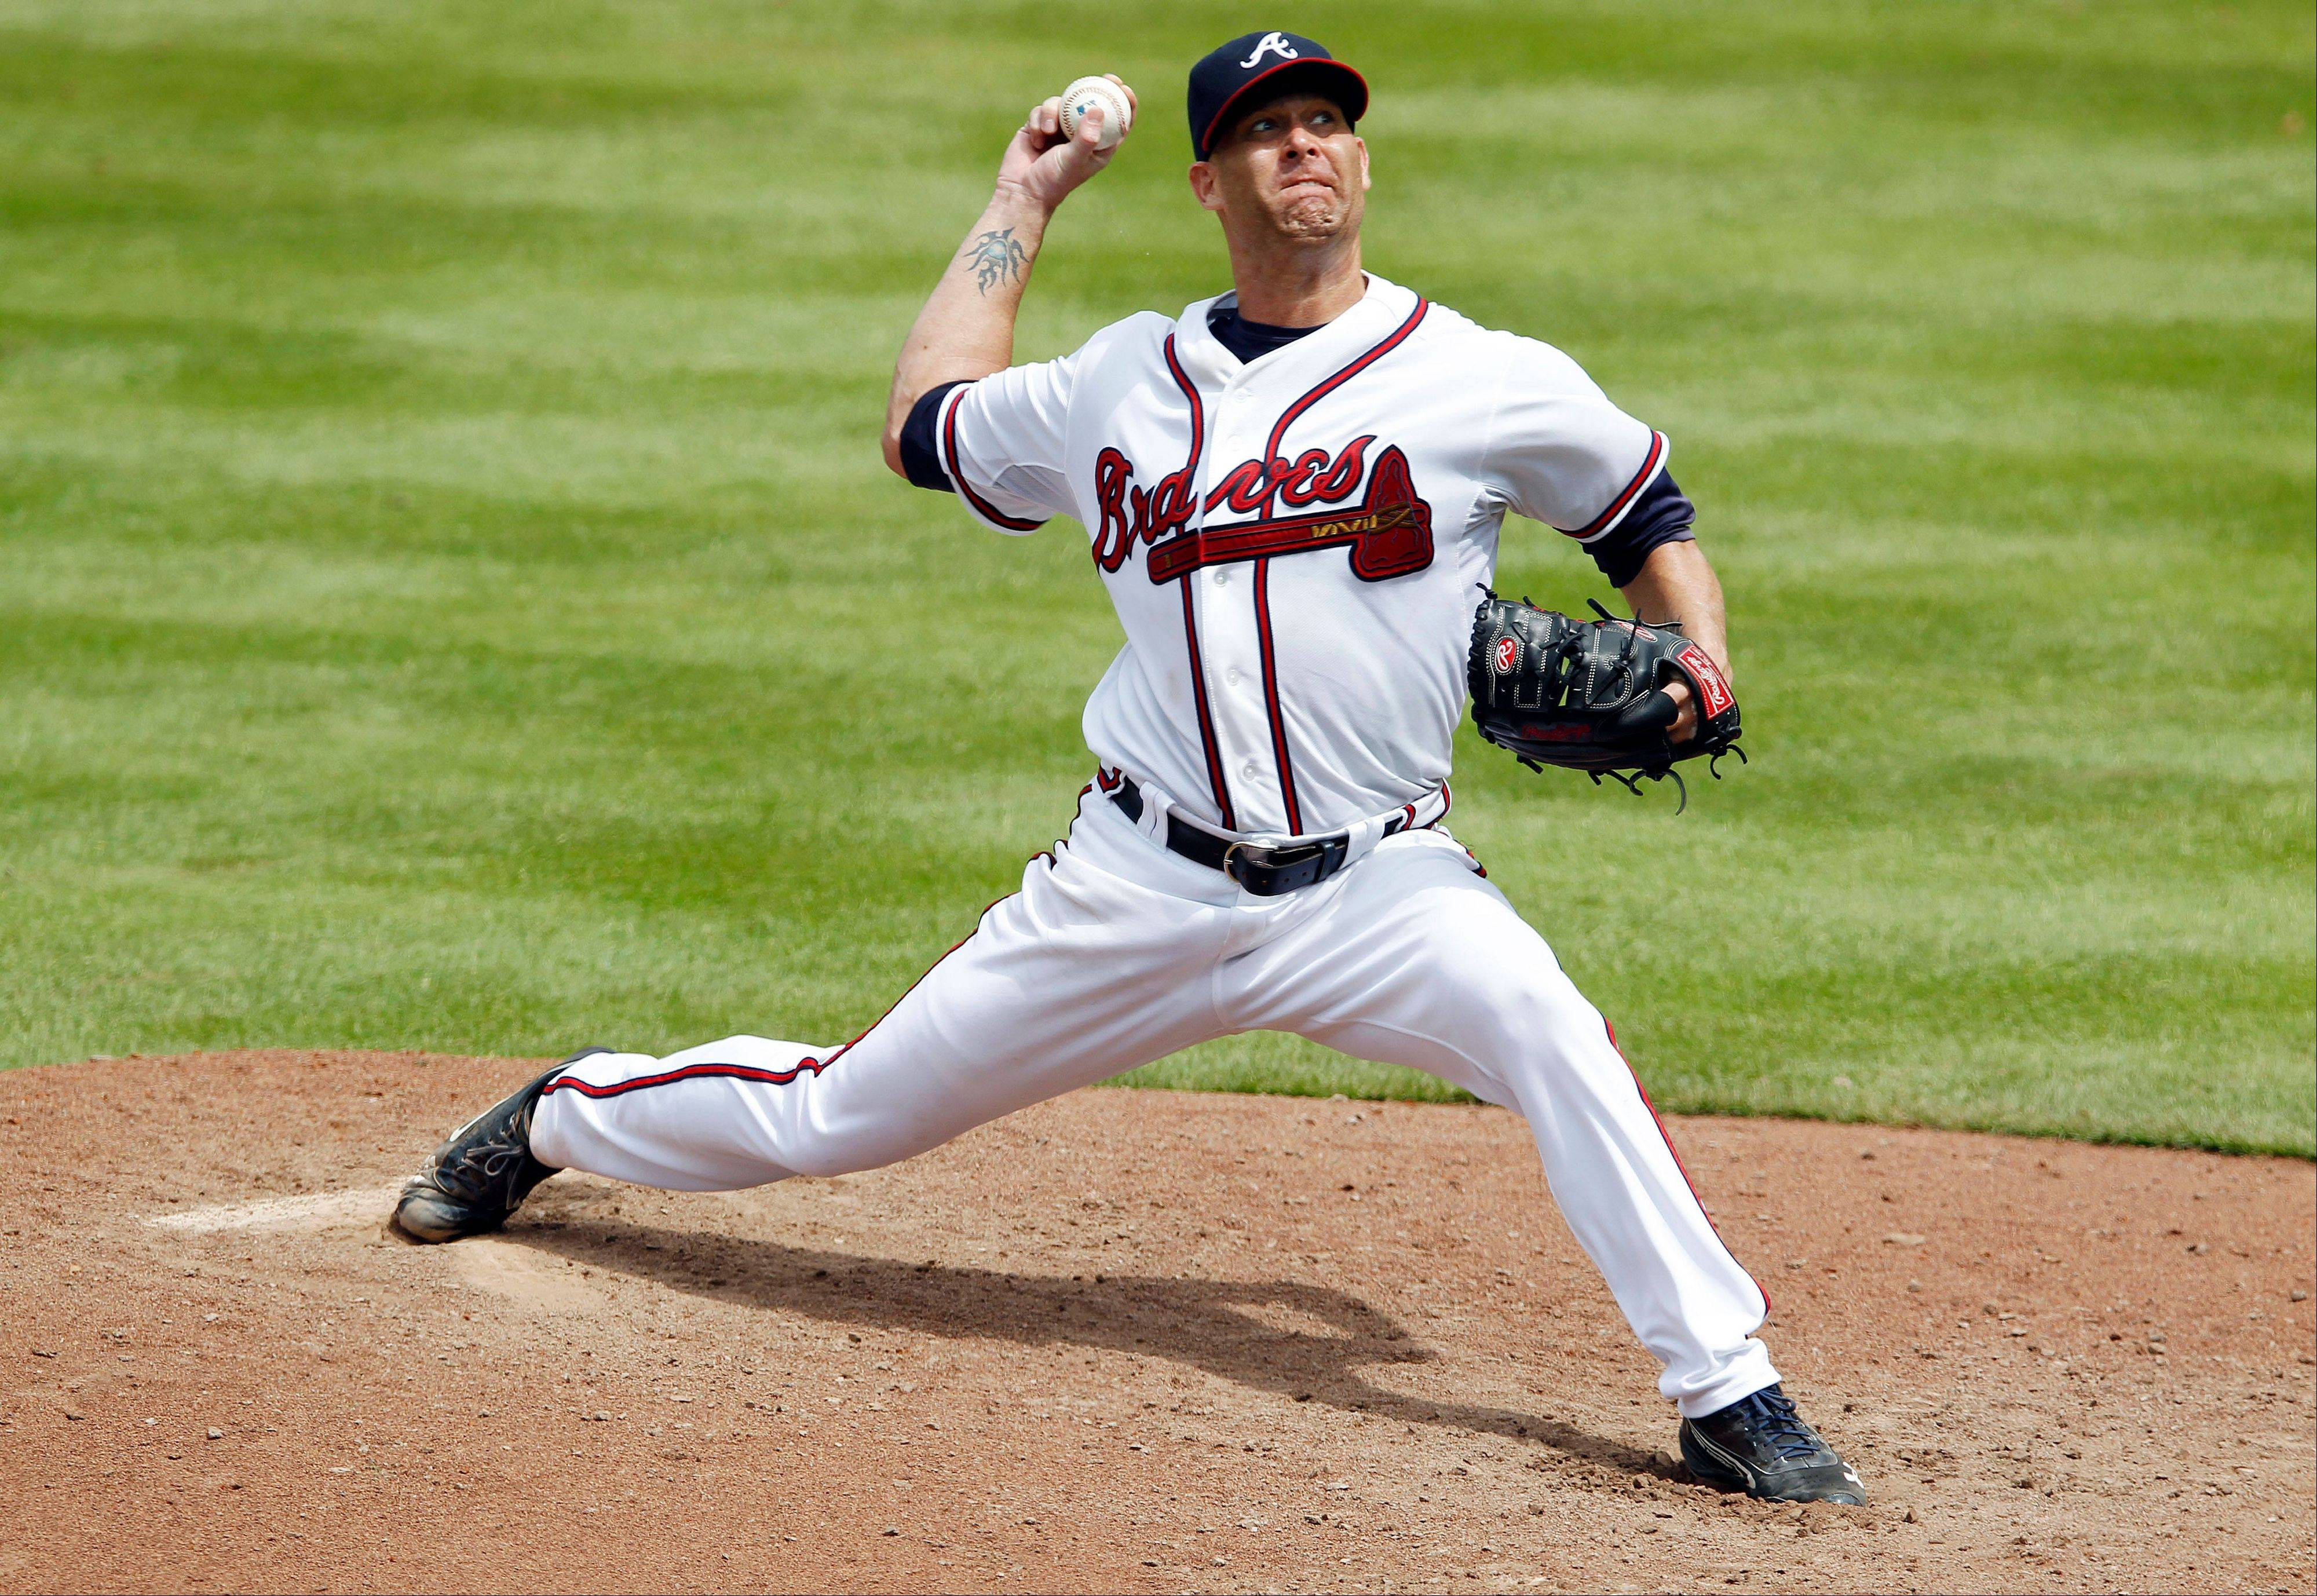 Braves starting pitcher Tim Hudson improved his record to 14-5 with a 1-0 victory Thursday over the Colorado Rockies in Atlanta.